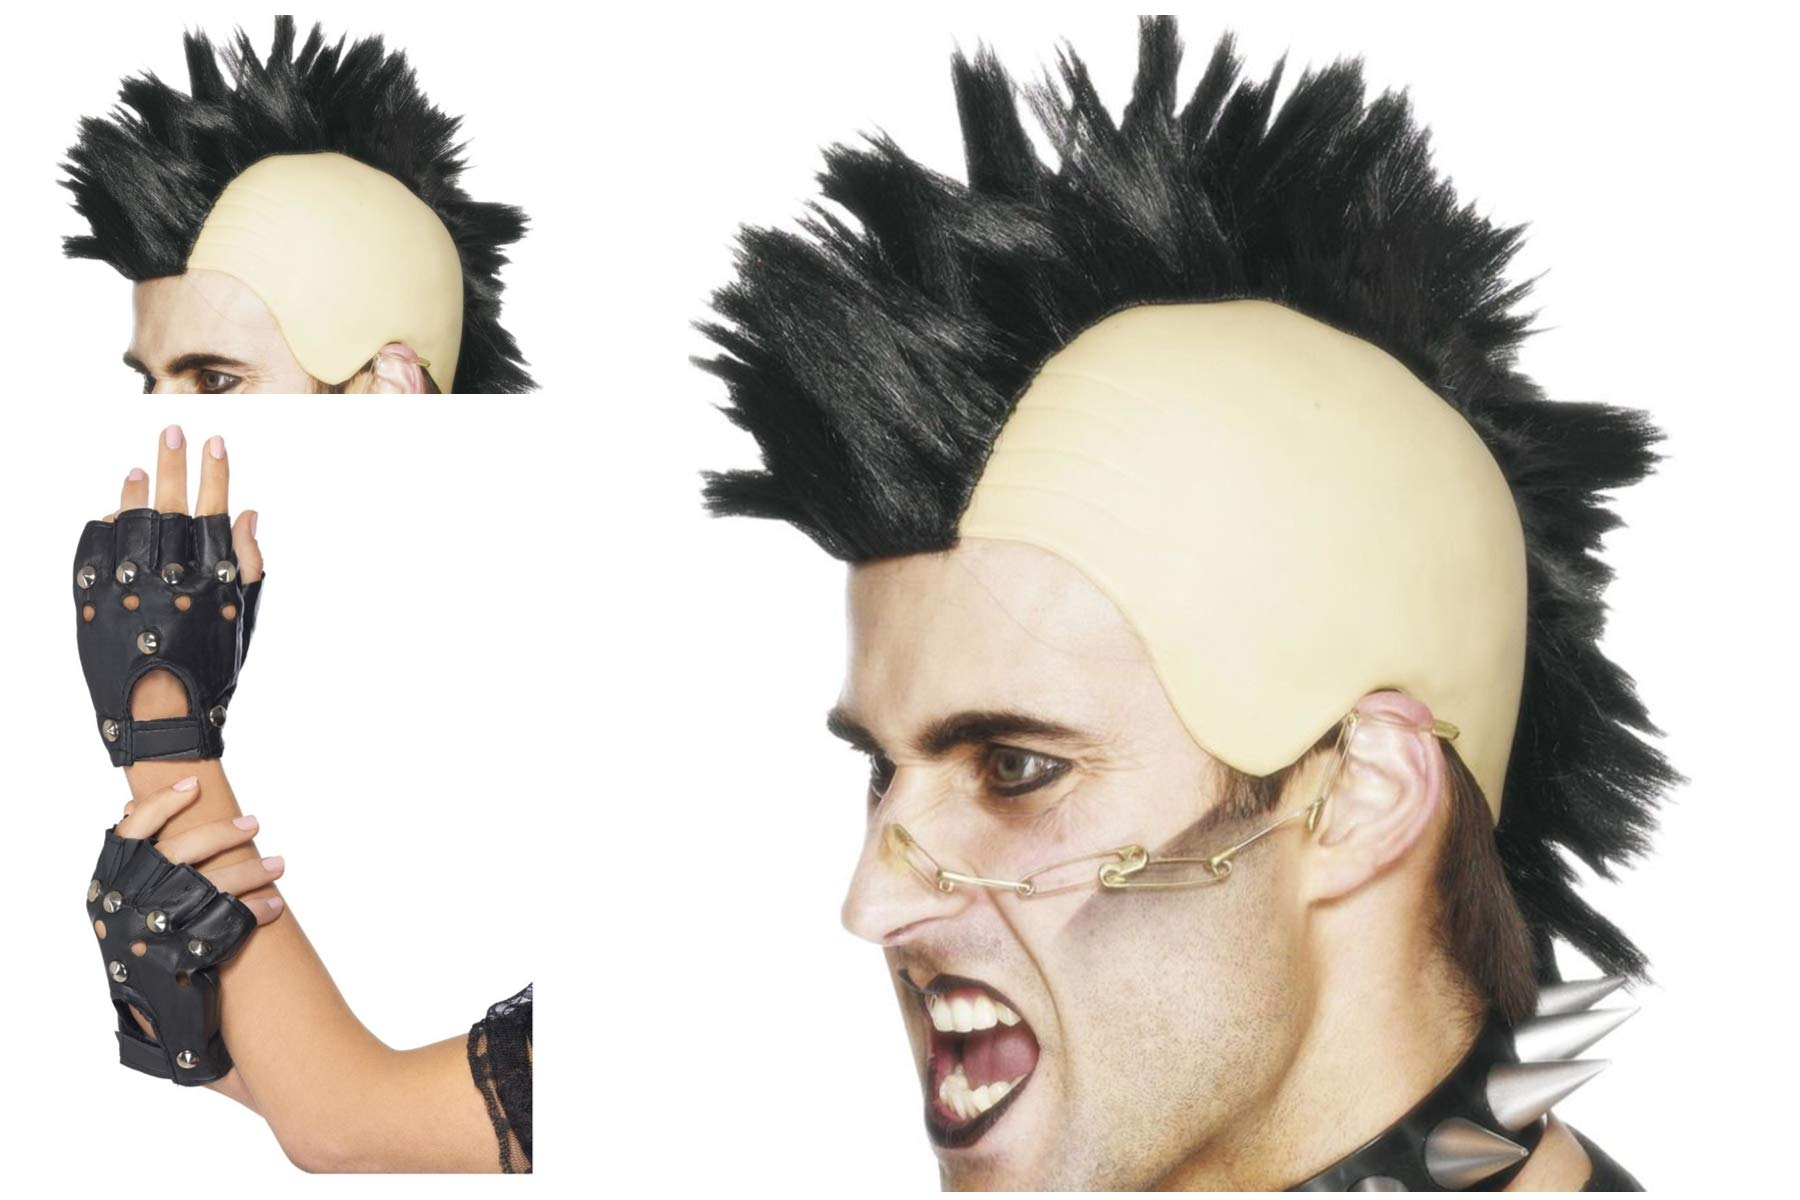 Fancy Dress World Pelucas Punk Unisex para Disfraz, Gran Peluca de ...